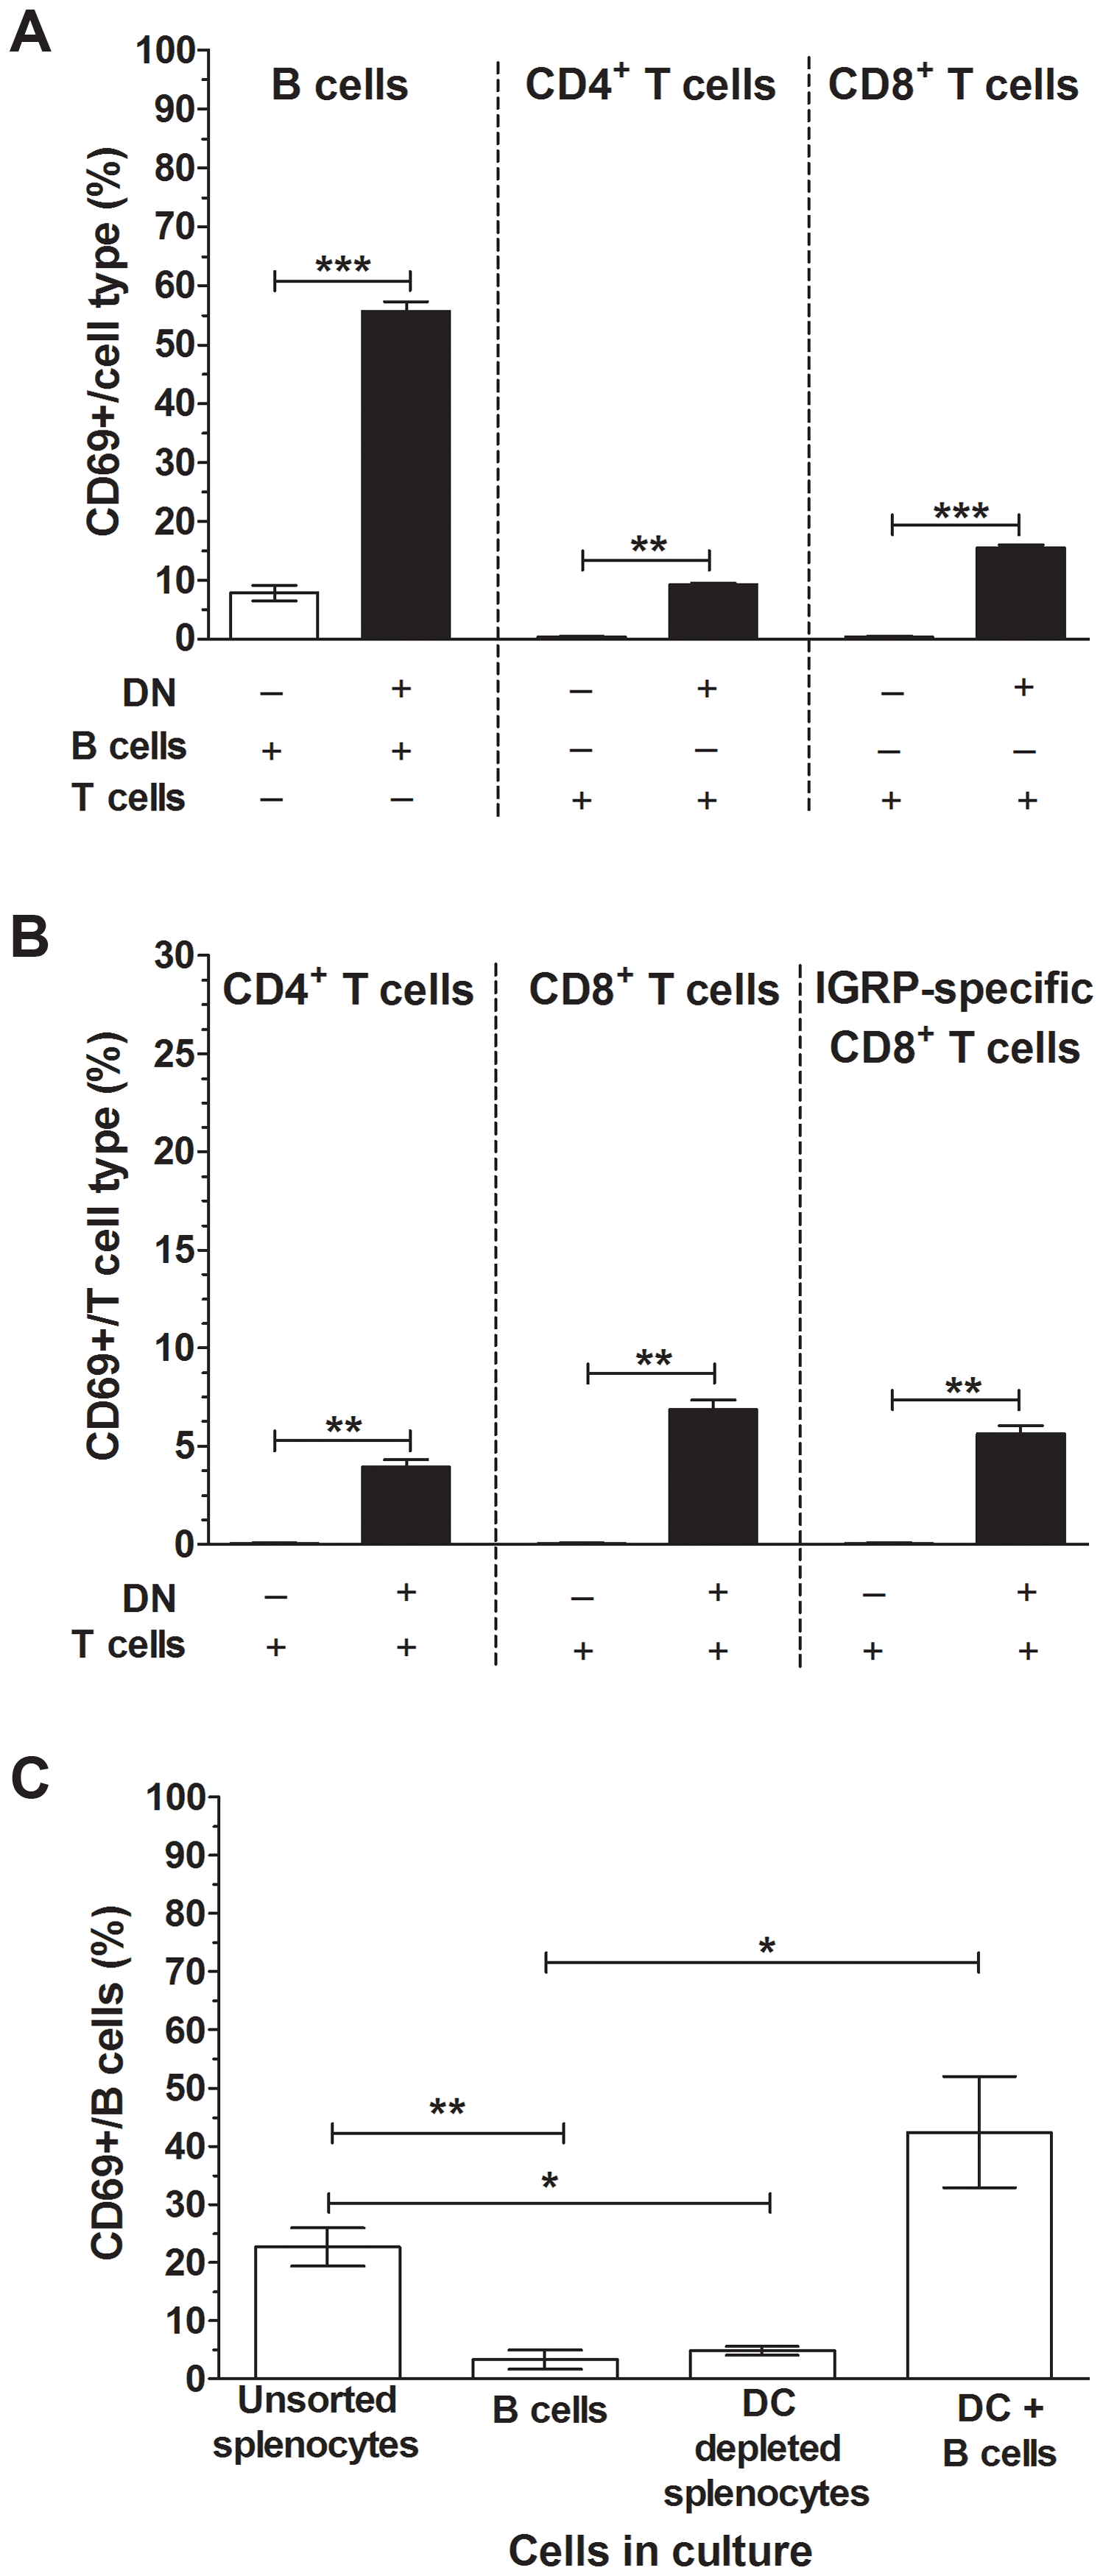 CD11c<sup>+</sup> DCs were essential for lymphocyte activation by RRV.